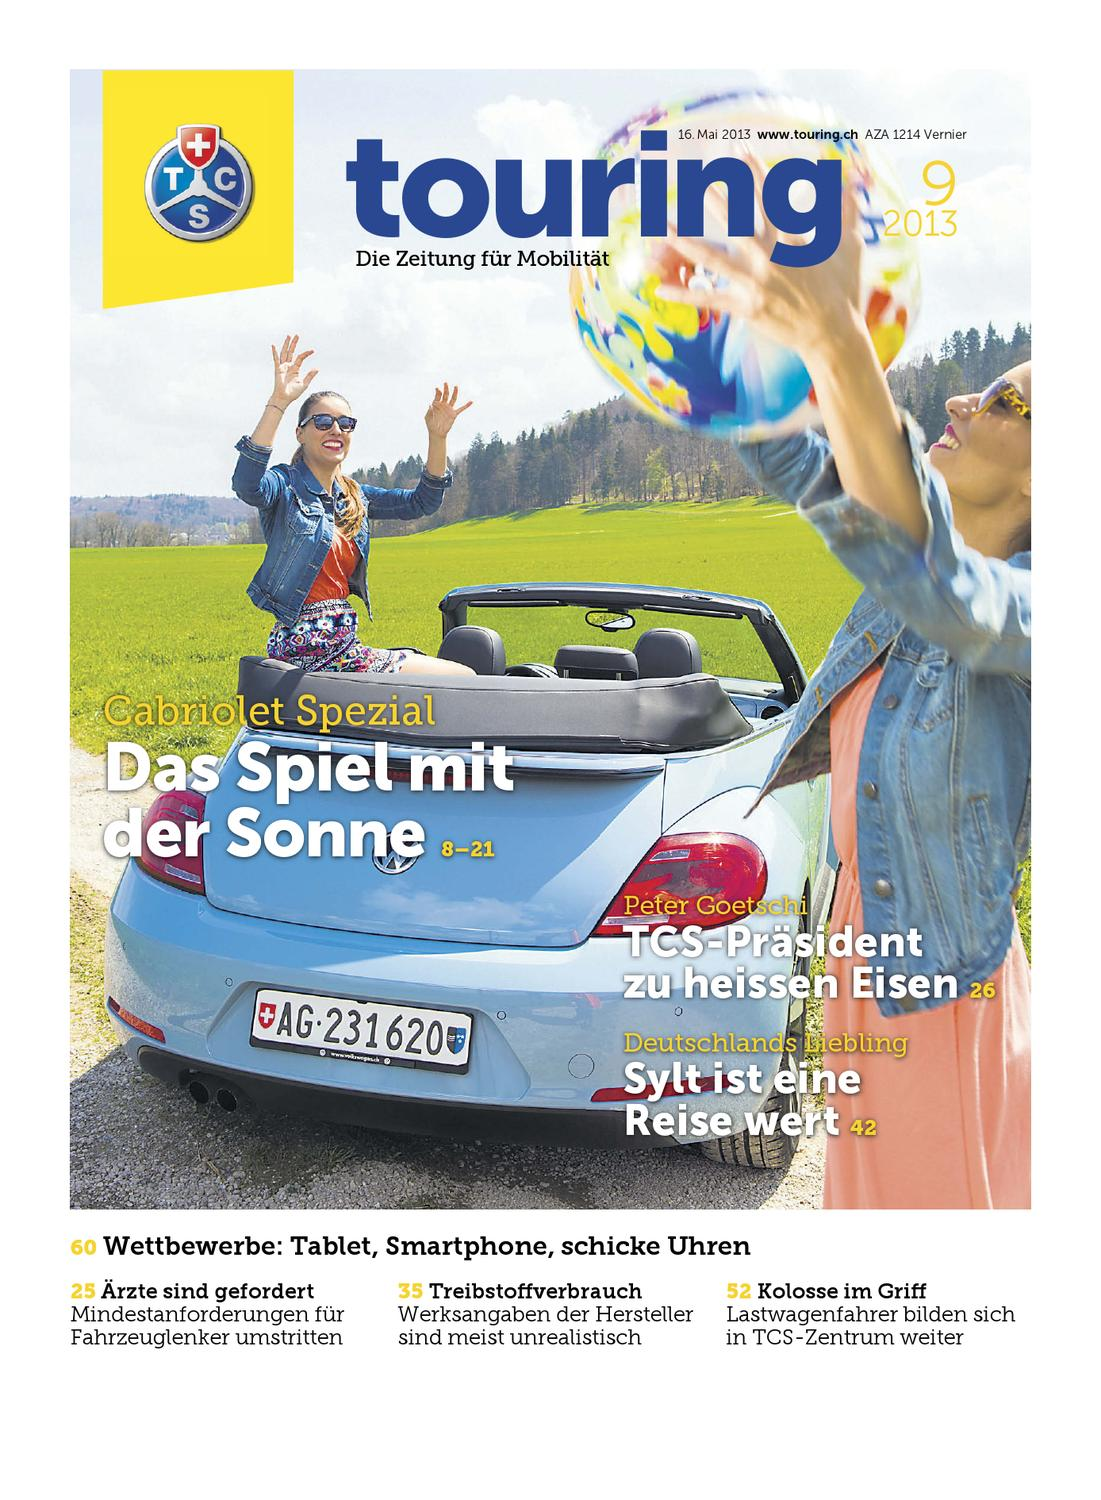 Touring 09 / 2013 Deutsch By Touring Club Schweiz Suisse Svizzera  Switzerland   Issuu